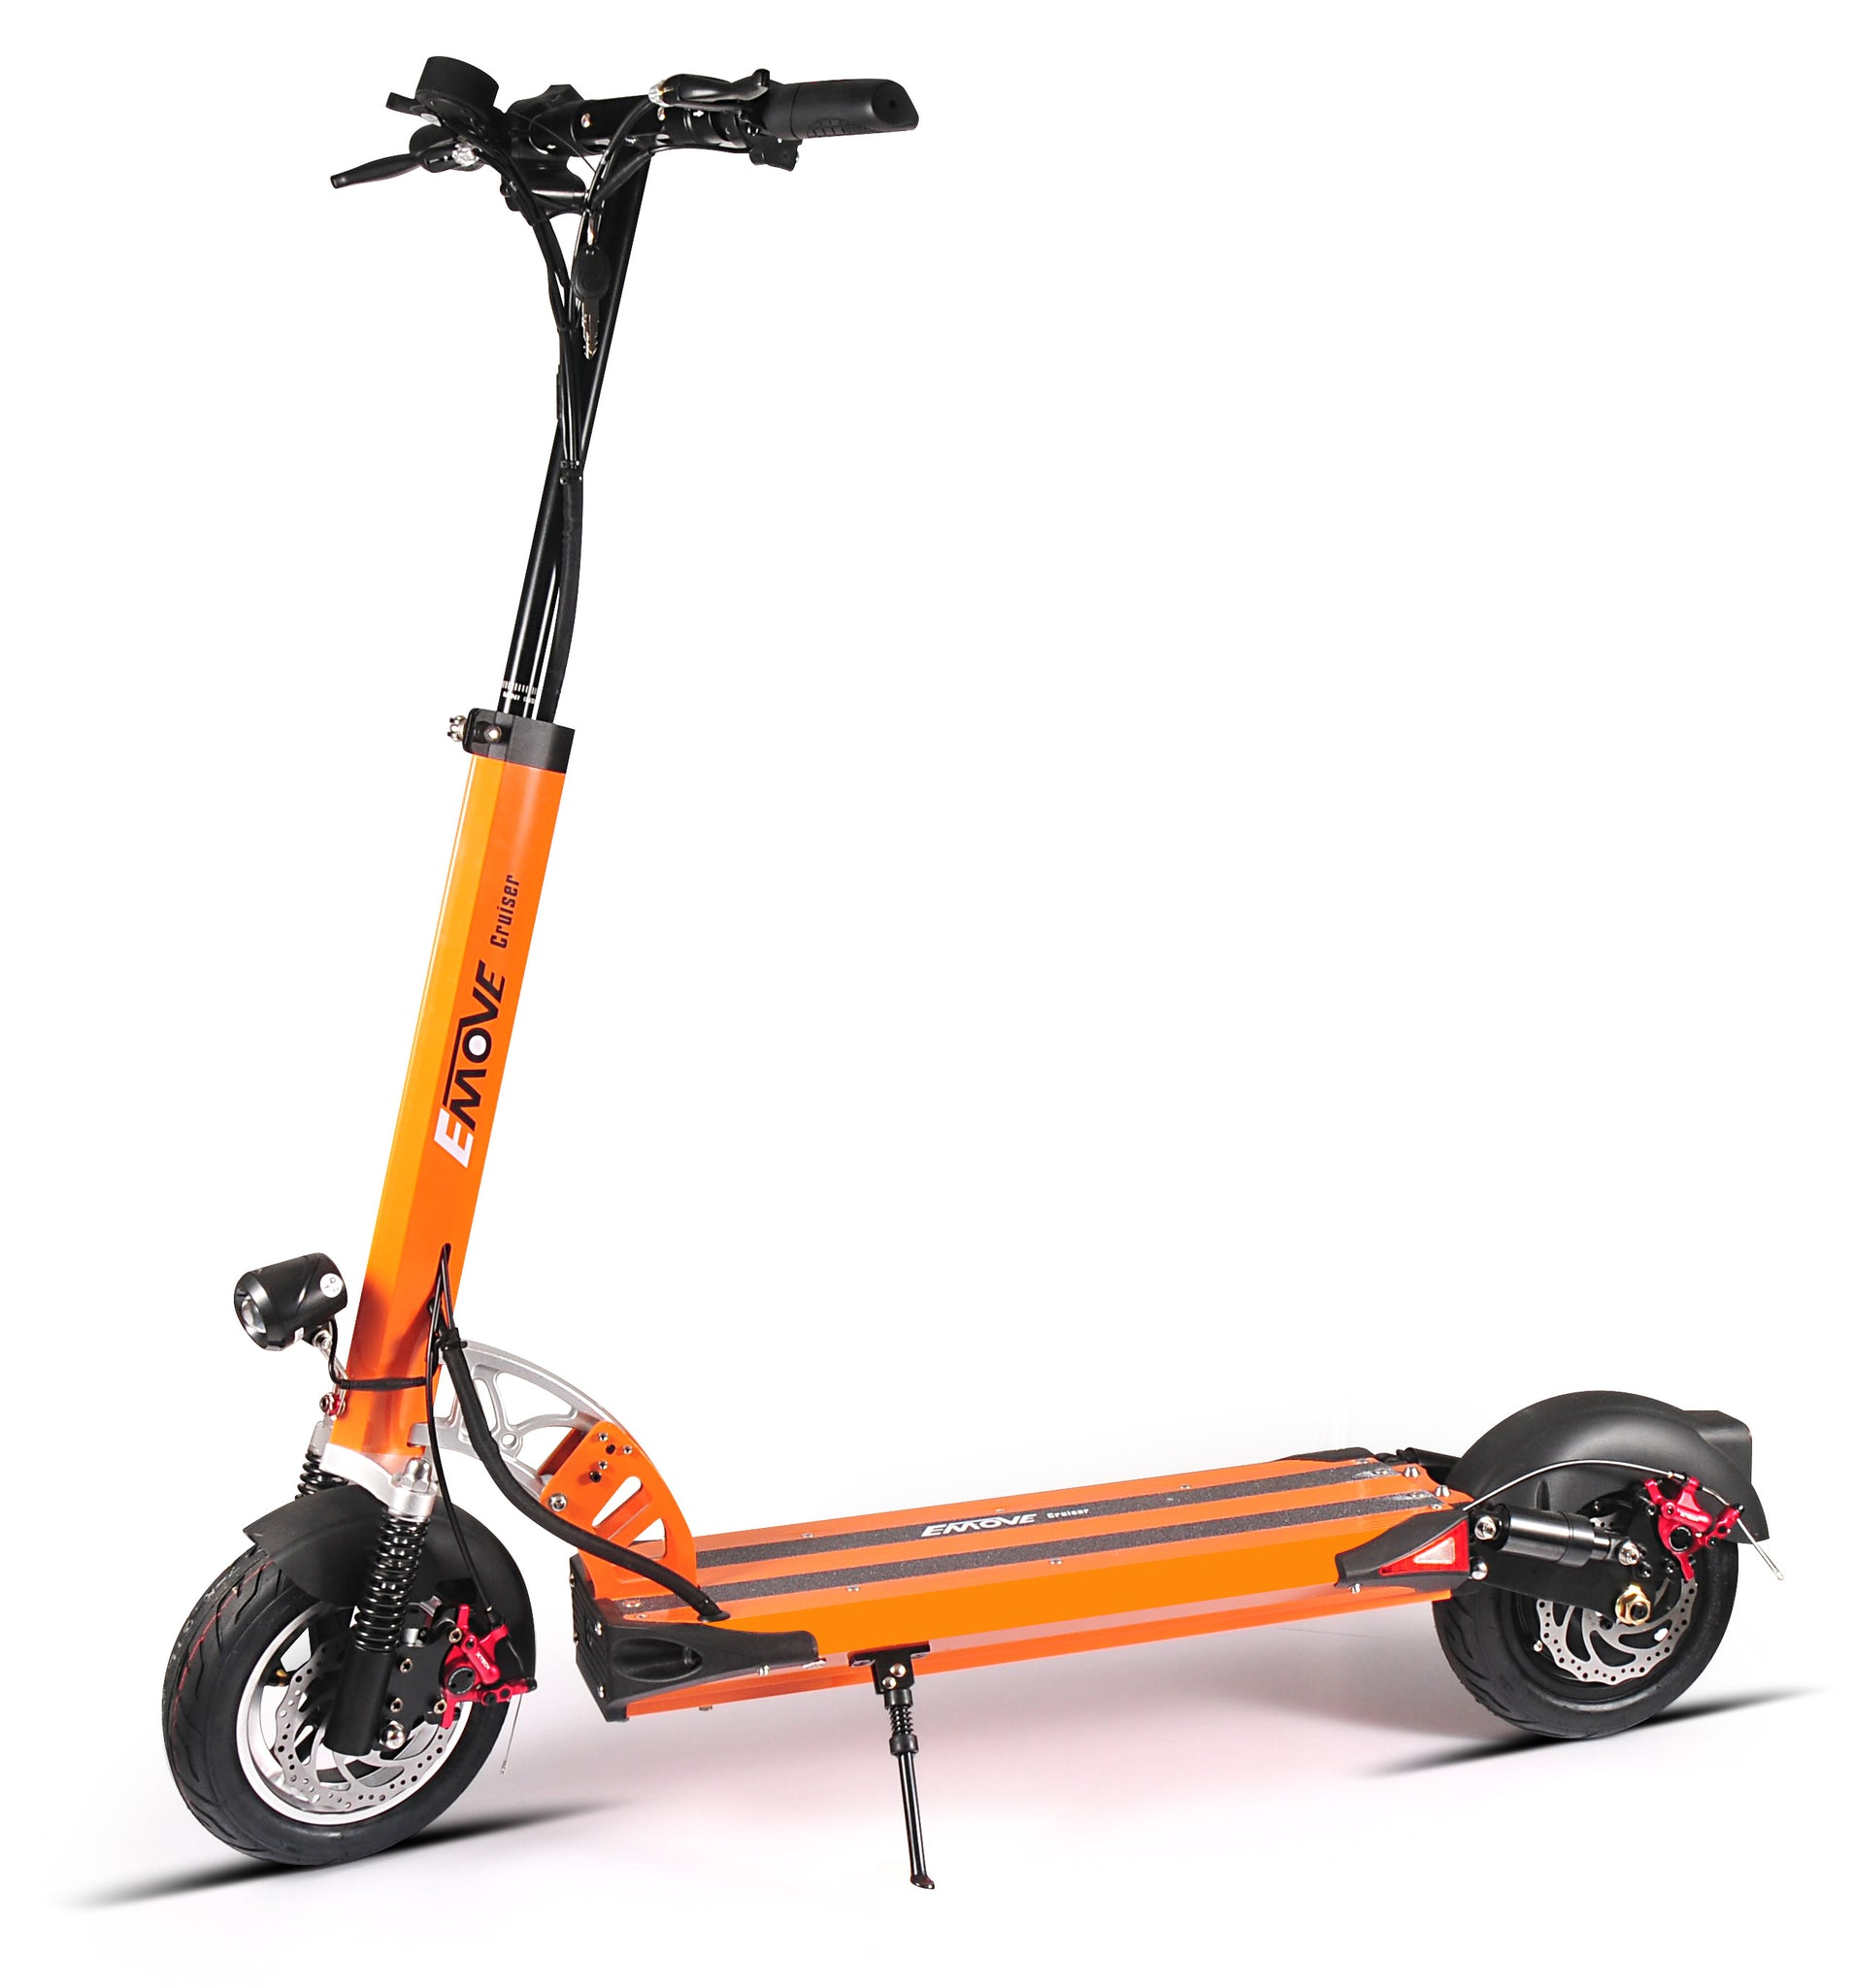 EMOVE Cruiser Electric Scooter Orange